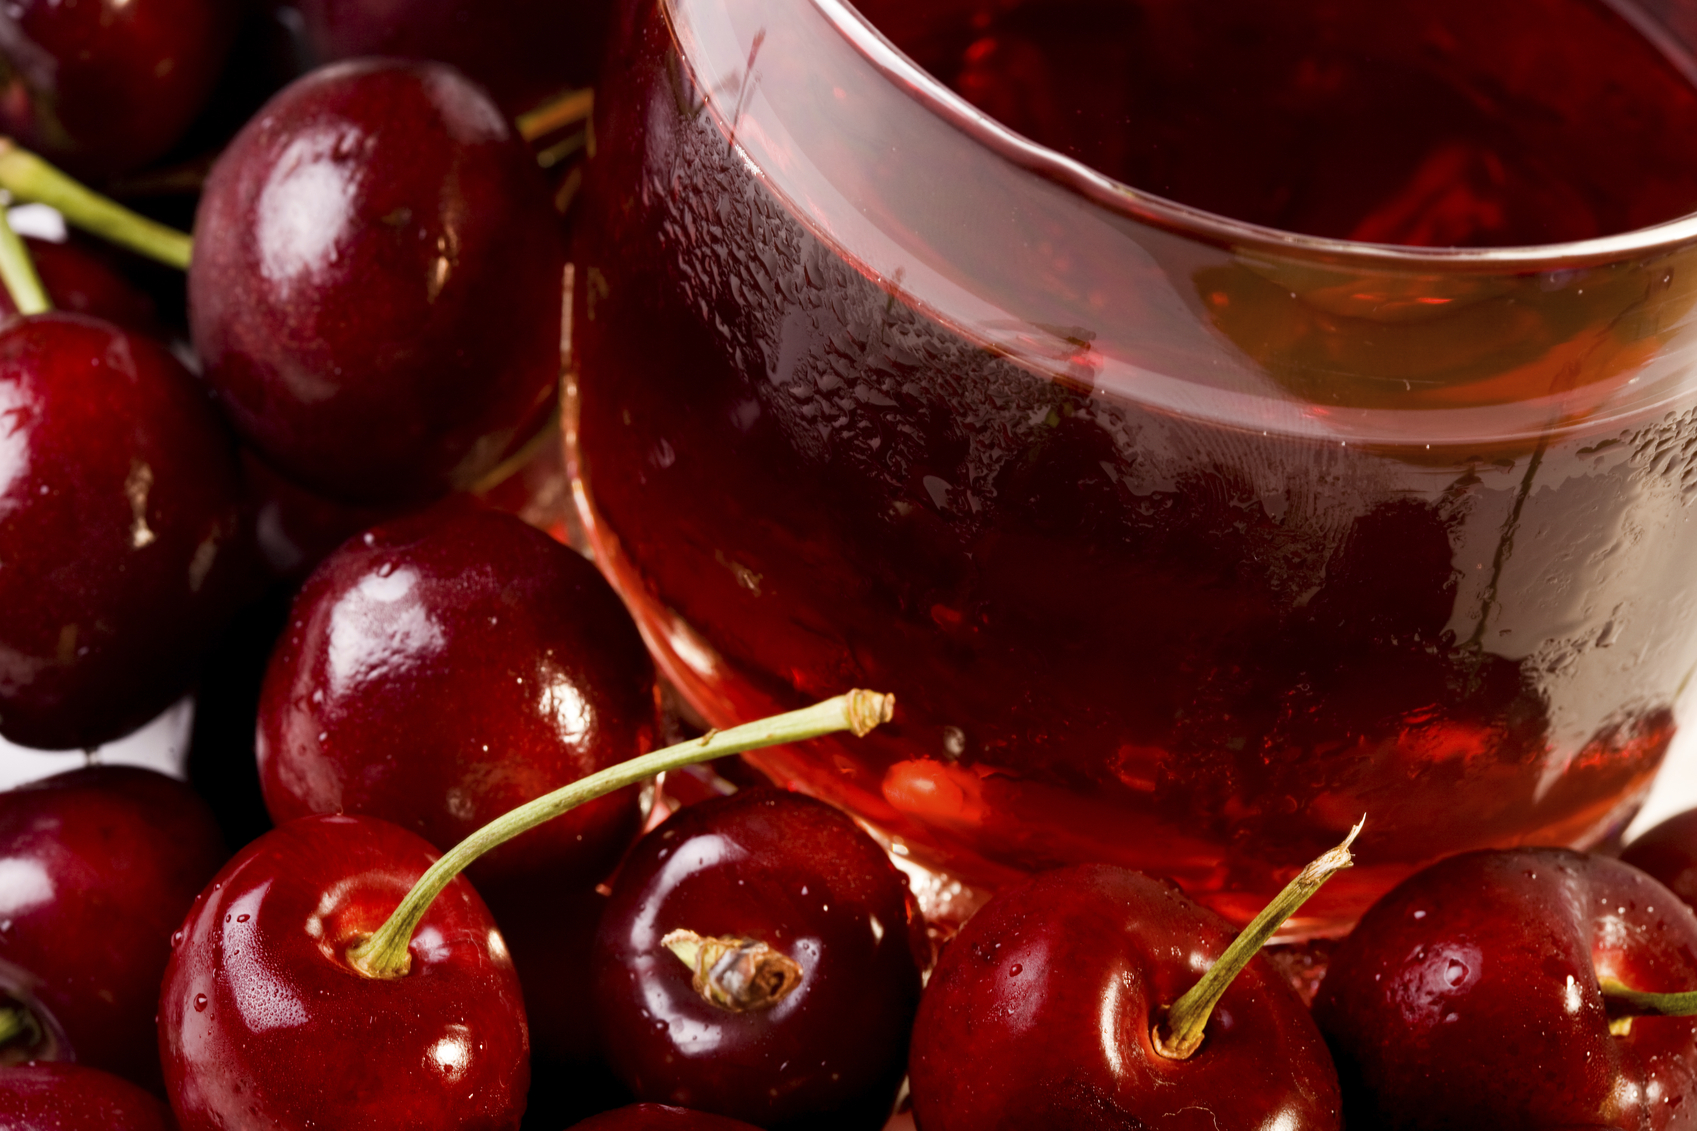 A cup of cherry juice per day can keep sleep troubles at bay image: djordjez